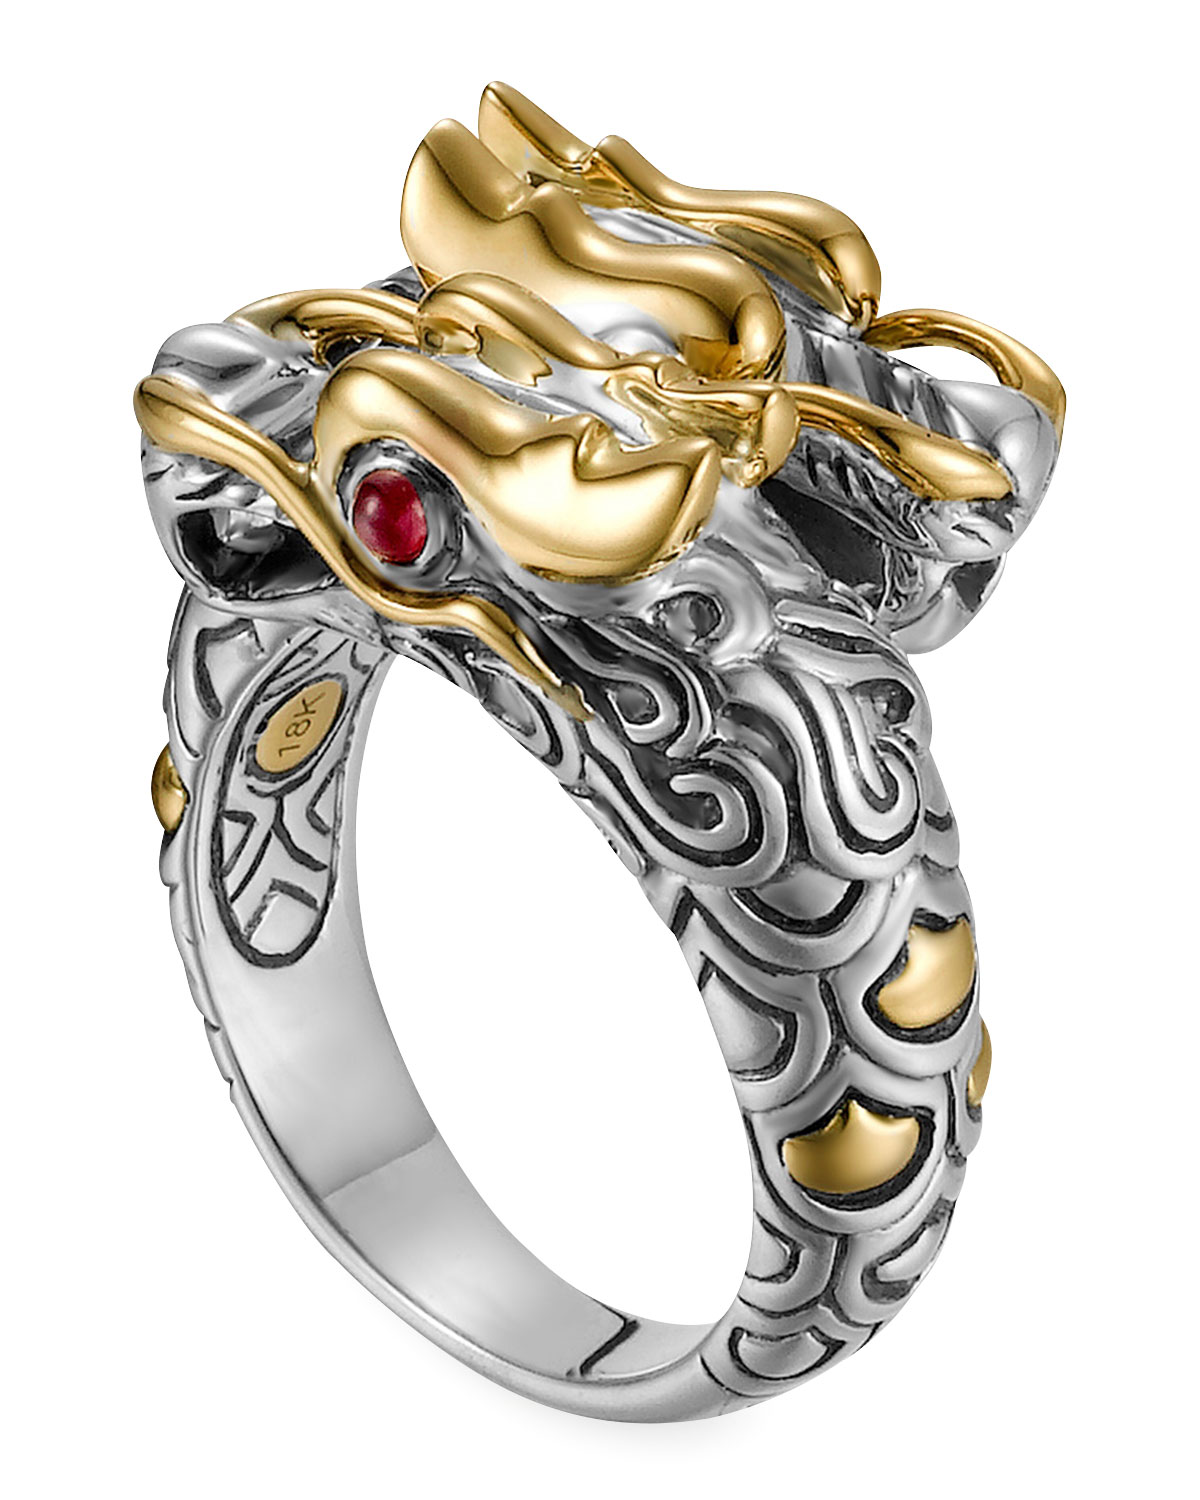 Kari LikeLikes: Gold & Silver Dragon Ring